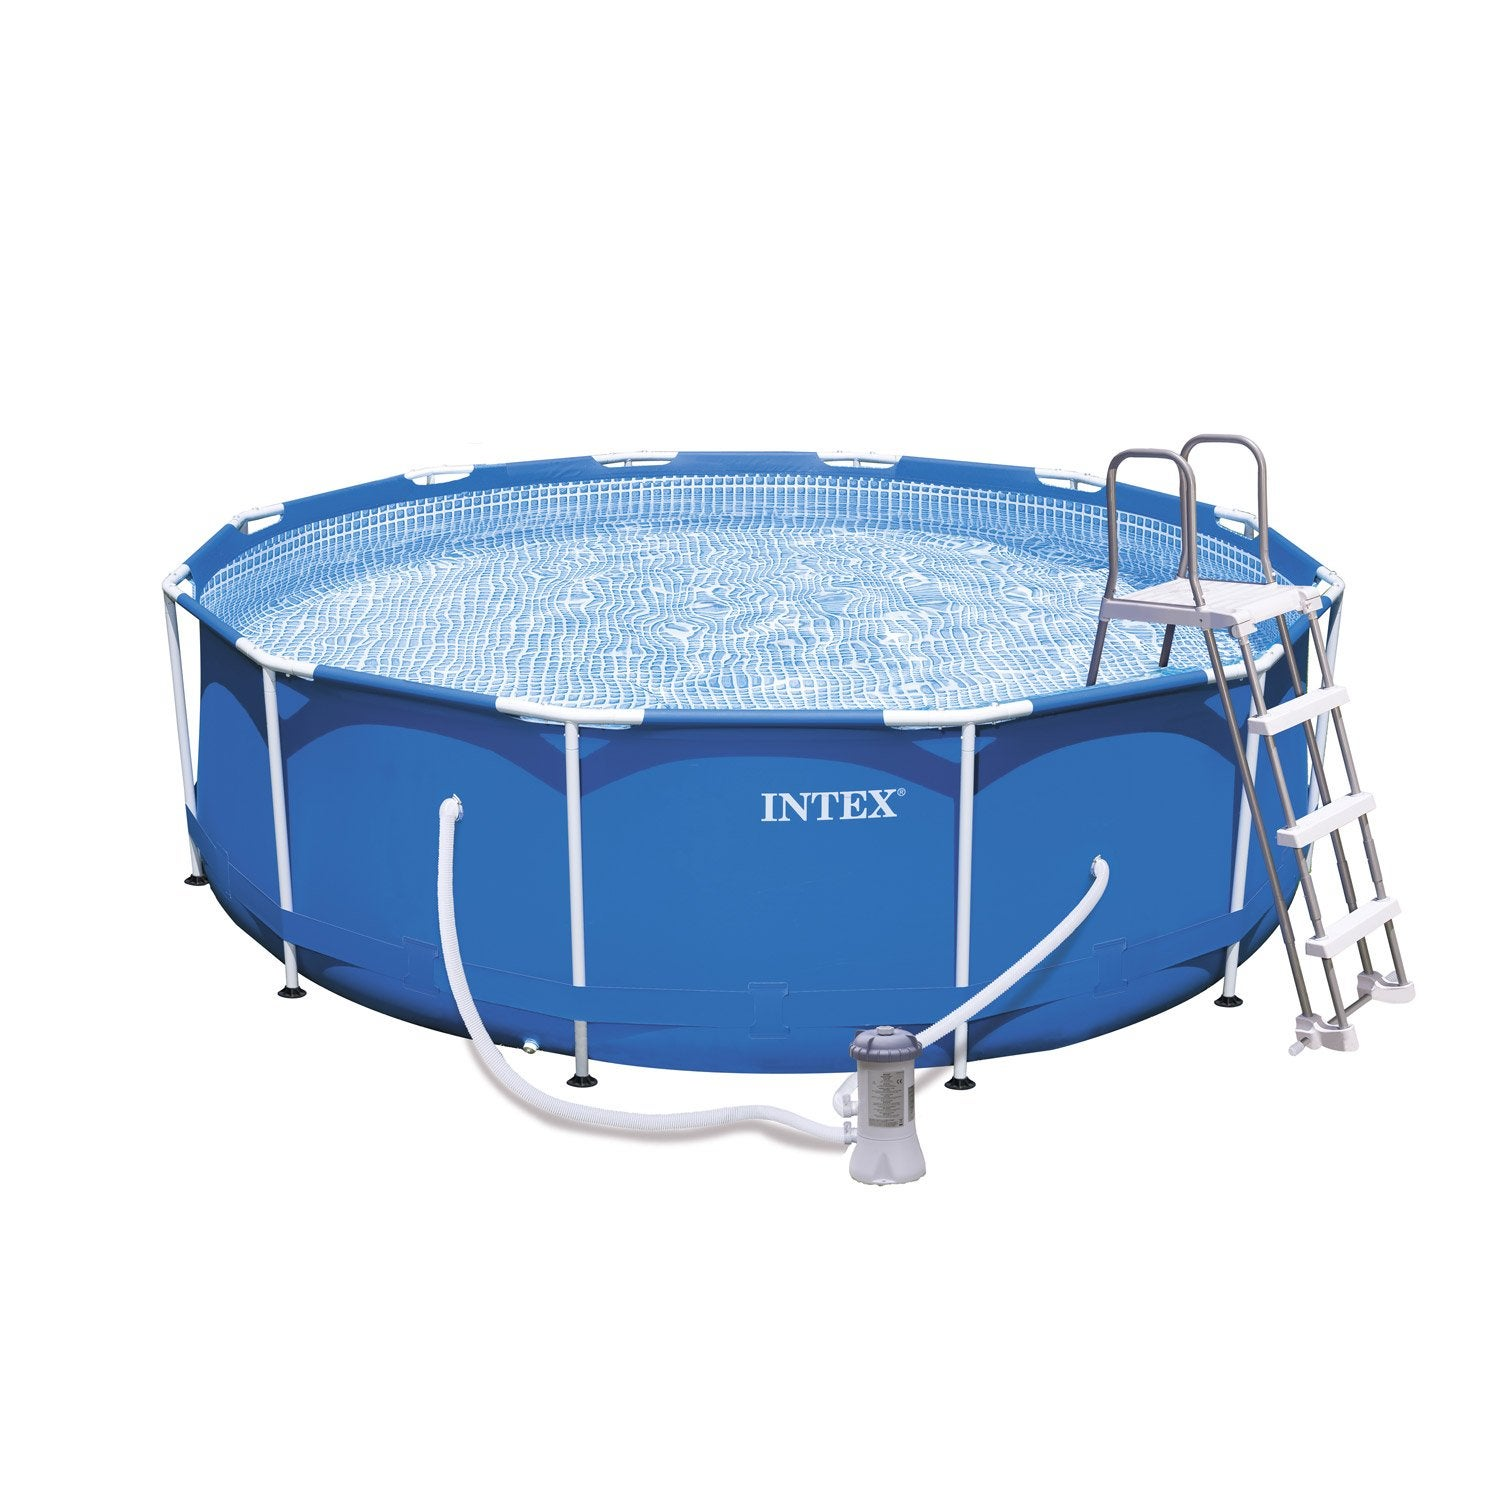 Piscine hors sol autoportante tubulaire m tal frame intex for Piscine tubulaire leroy merlin